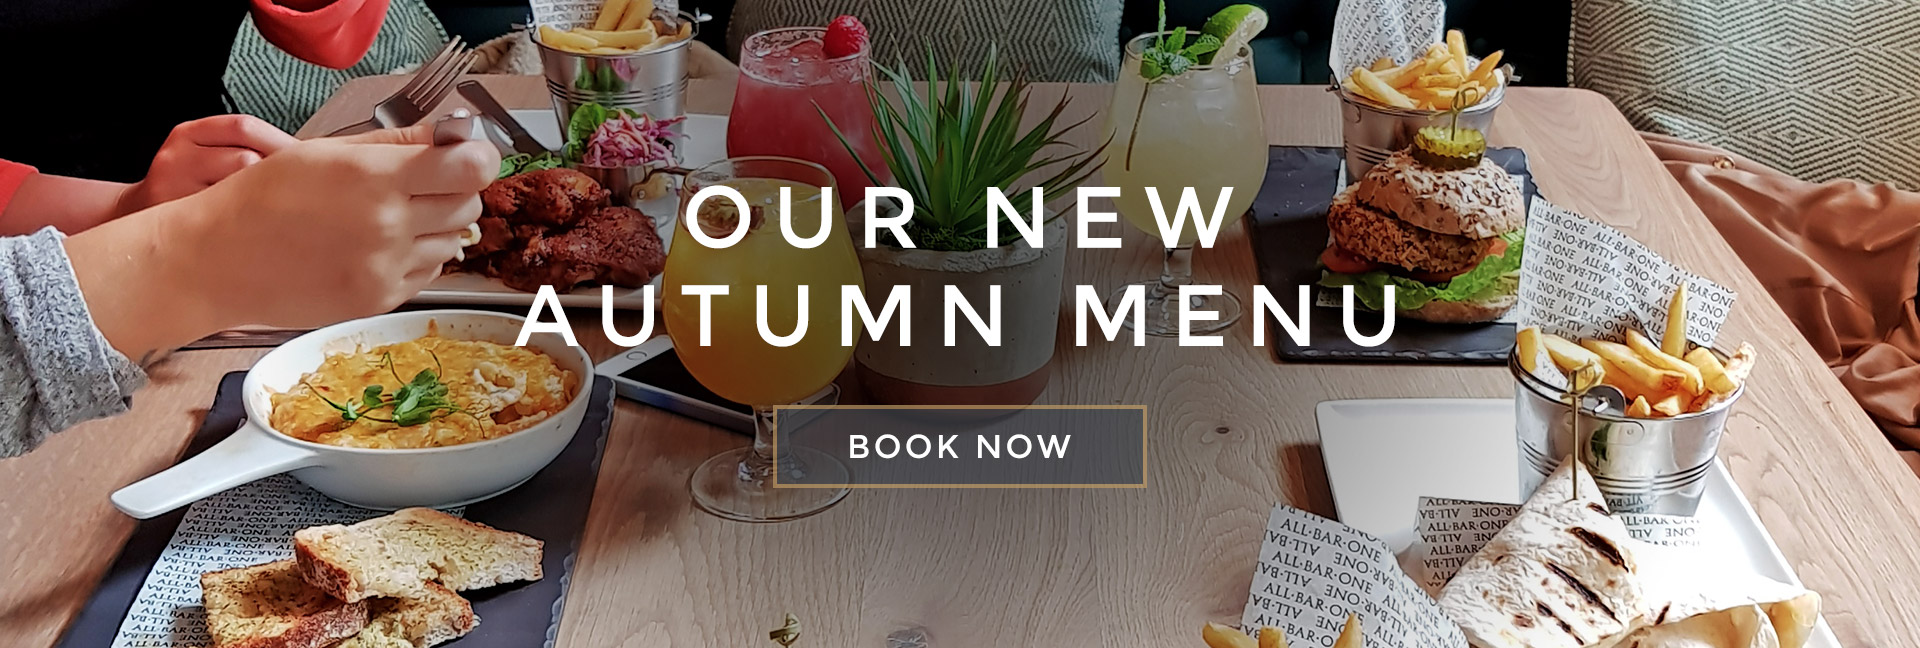 Our new Autumn menu at All Bar One Sutton - Book now